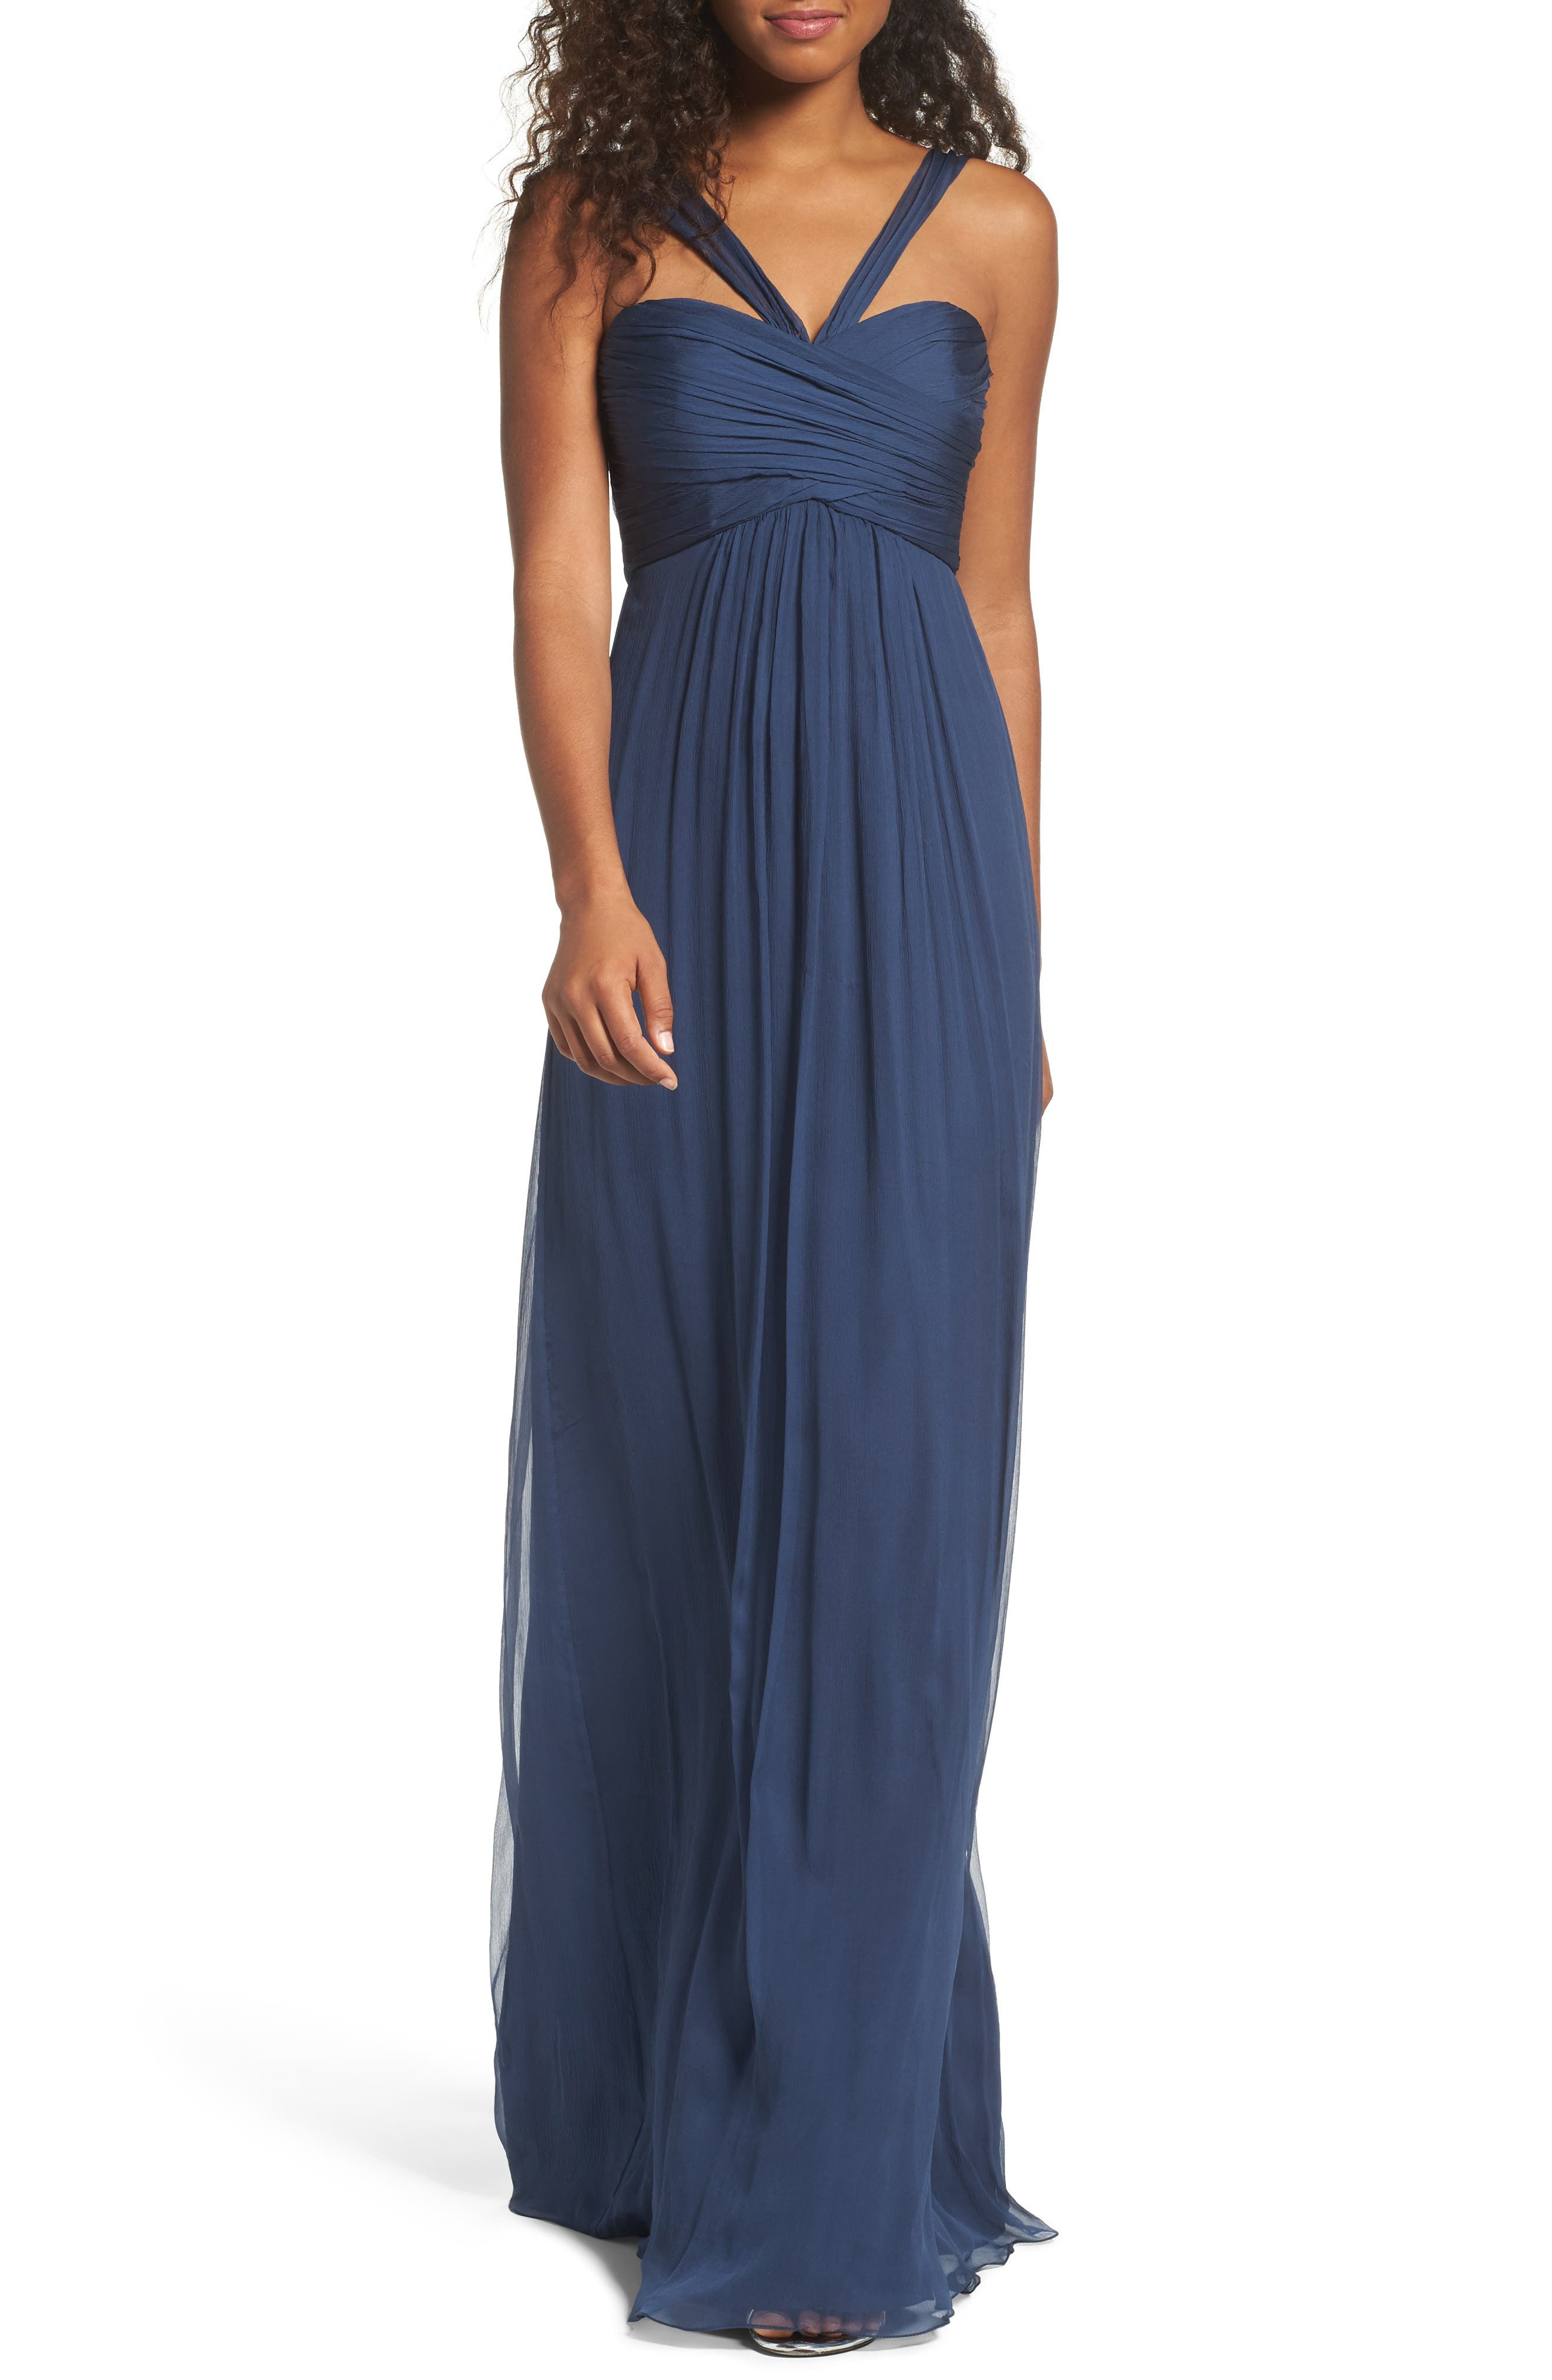 Corbin Crinkled Chiffon Empire Gown,                         Main,                         color, French Blue